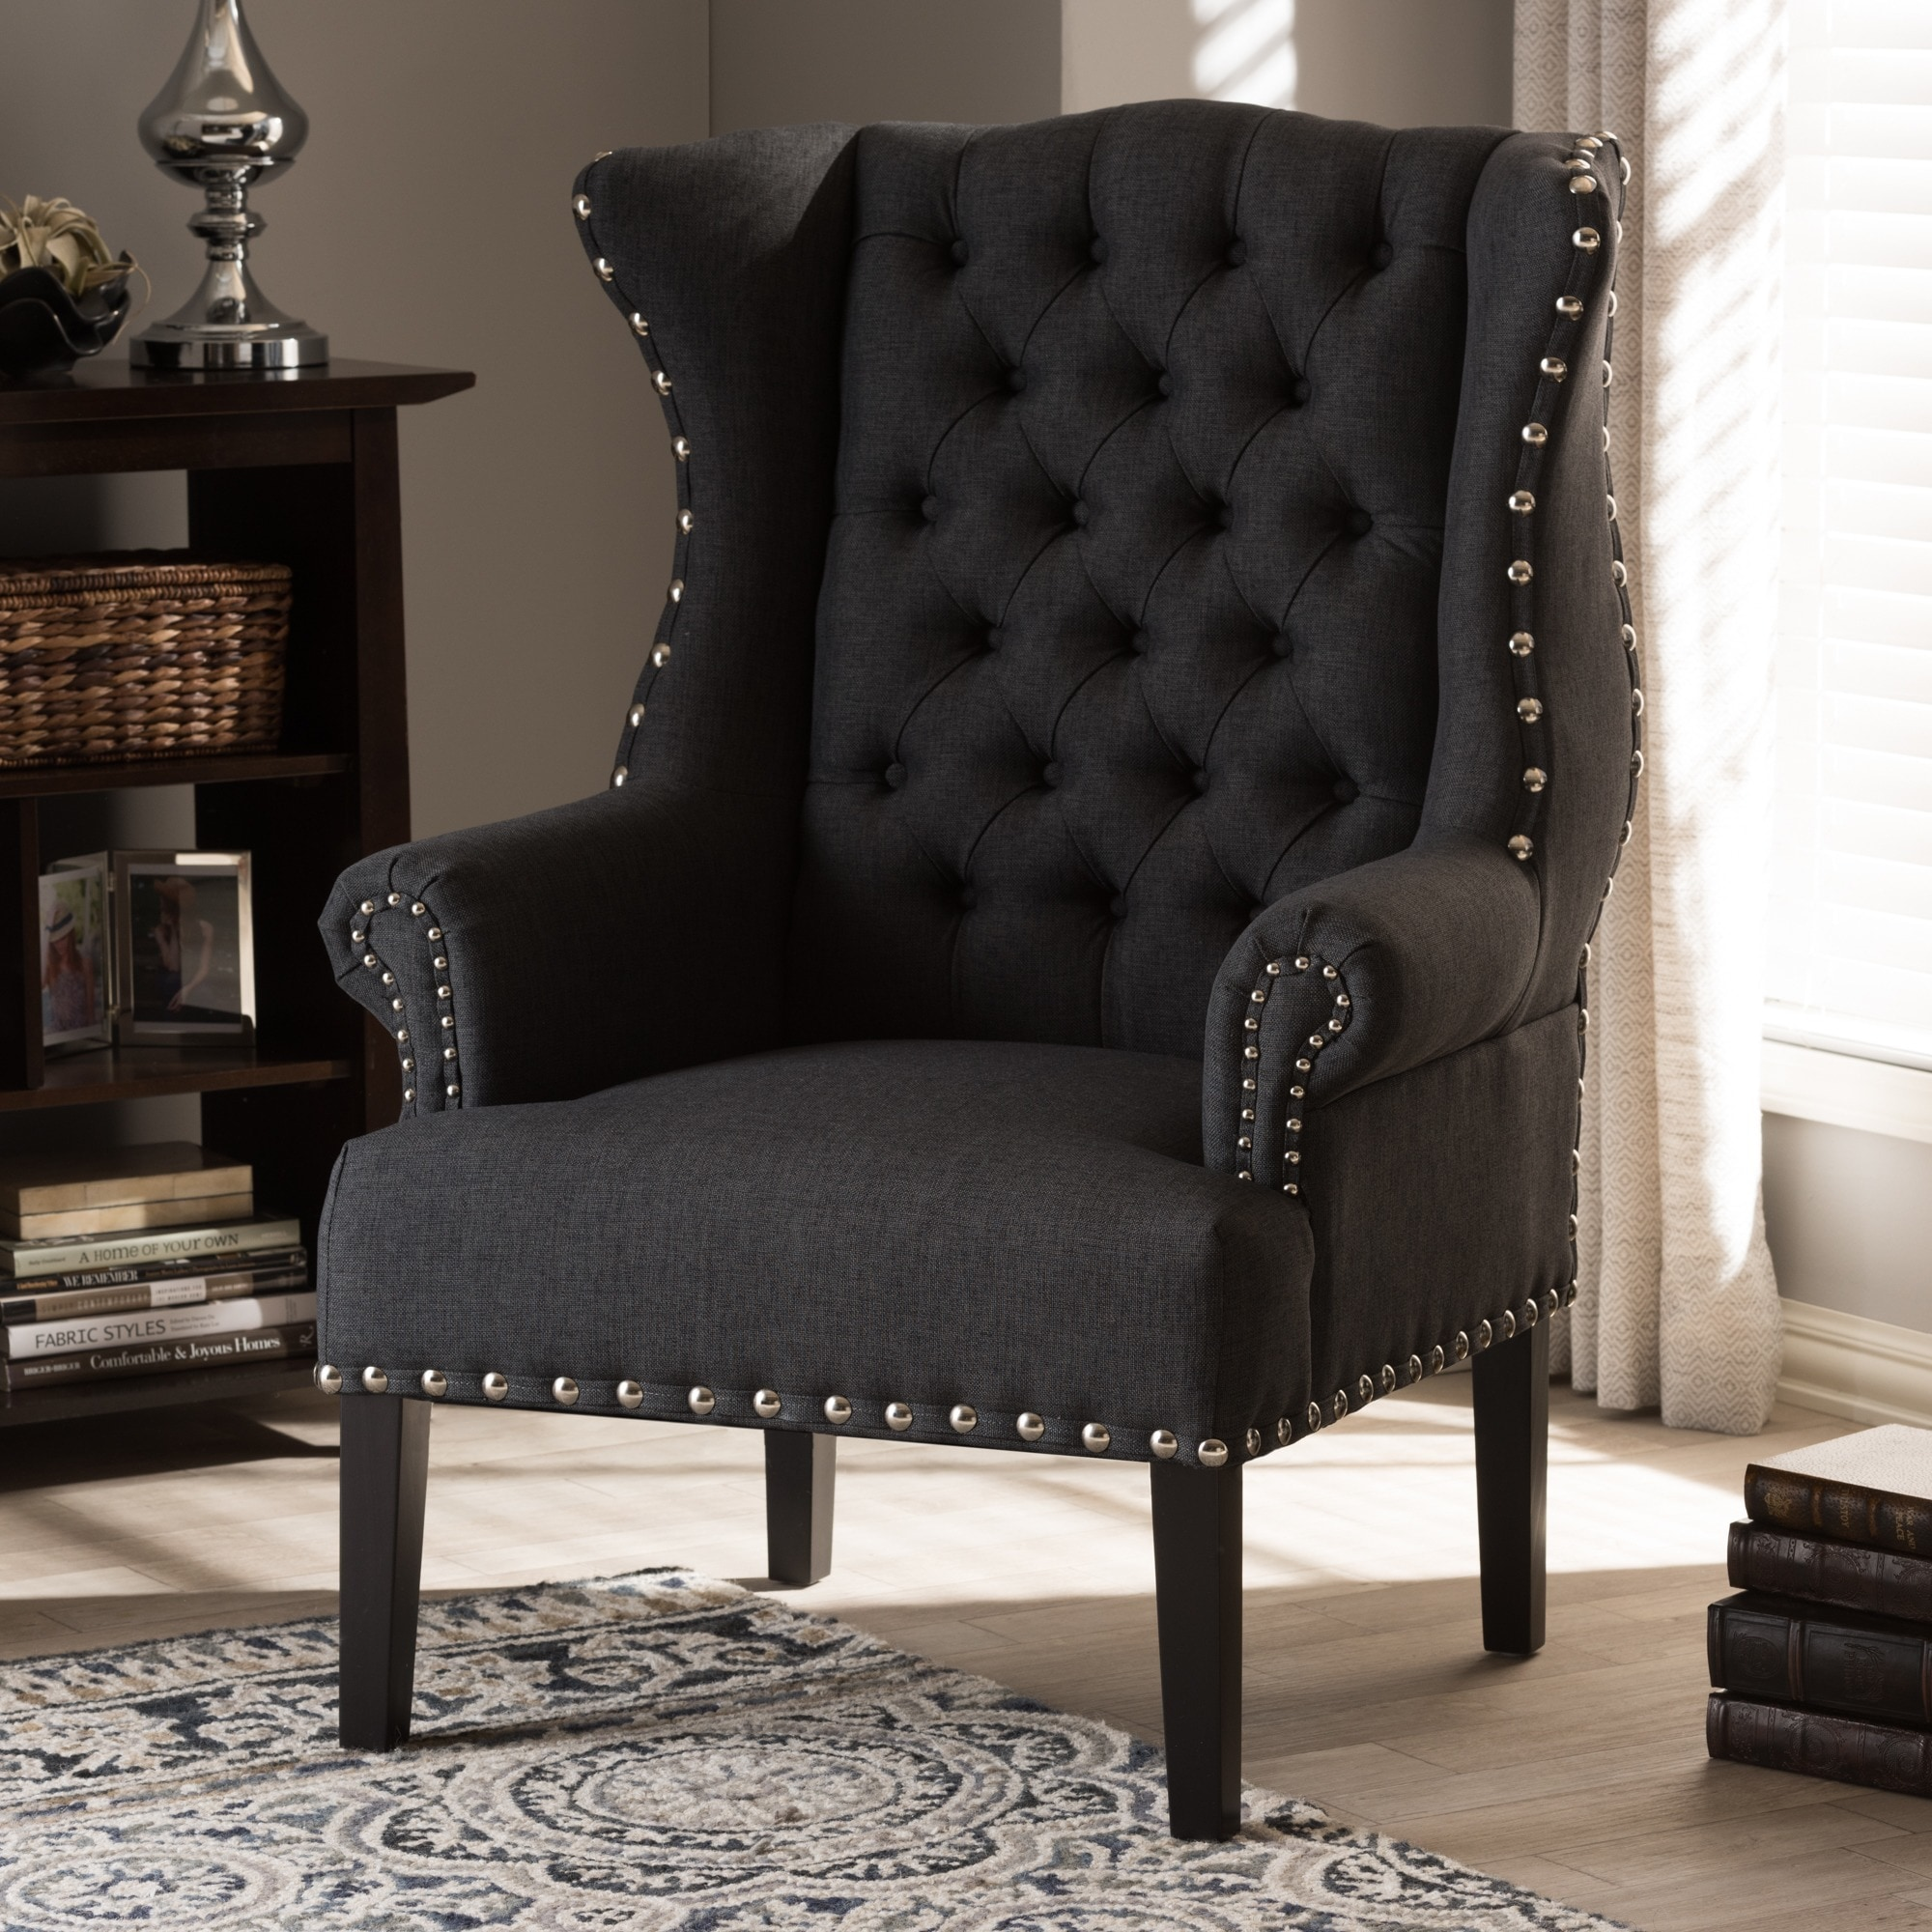 Baxton Studio Patterson Grey Linen and Burlap Upholstered...